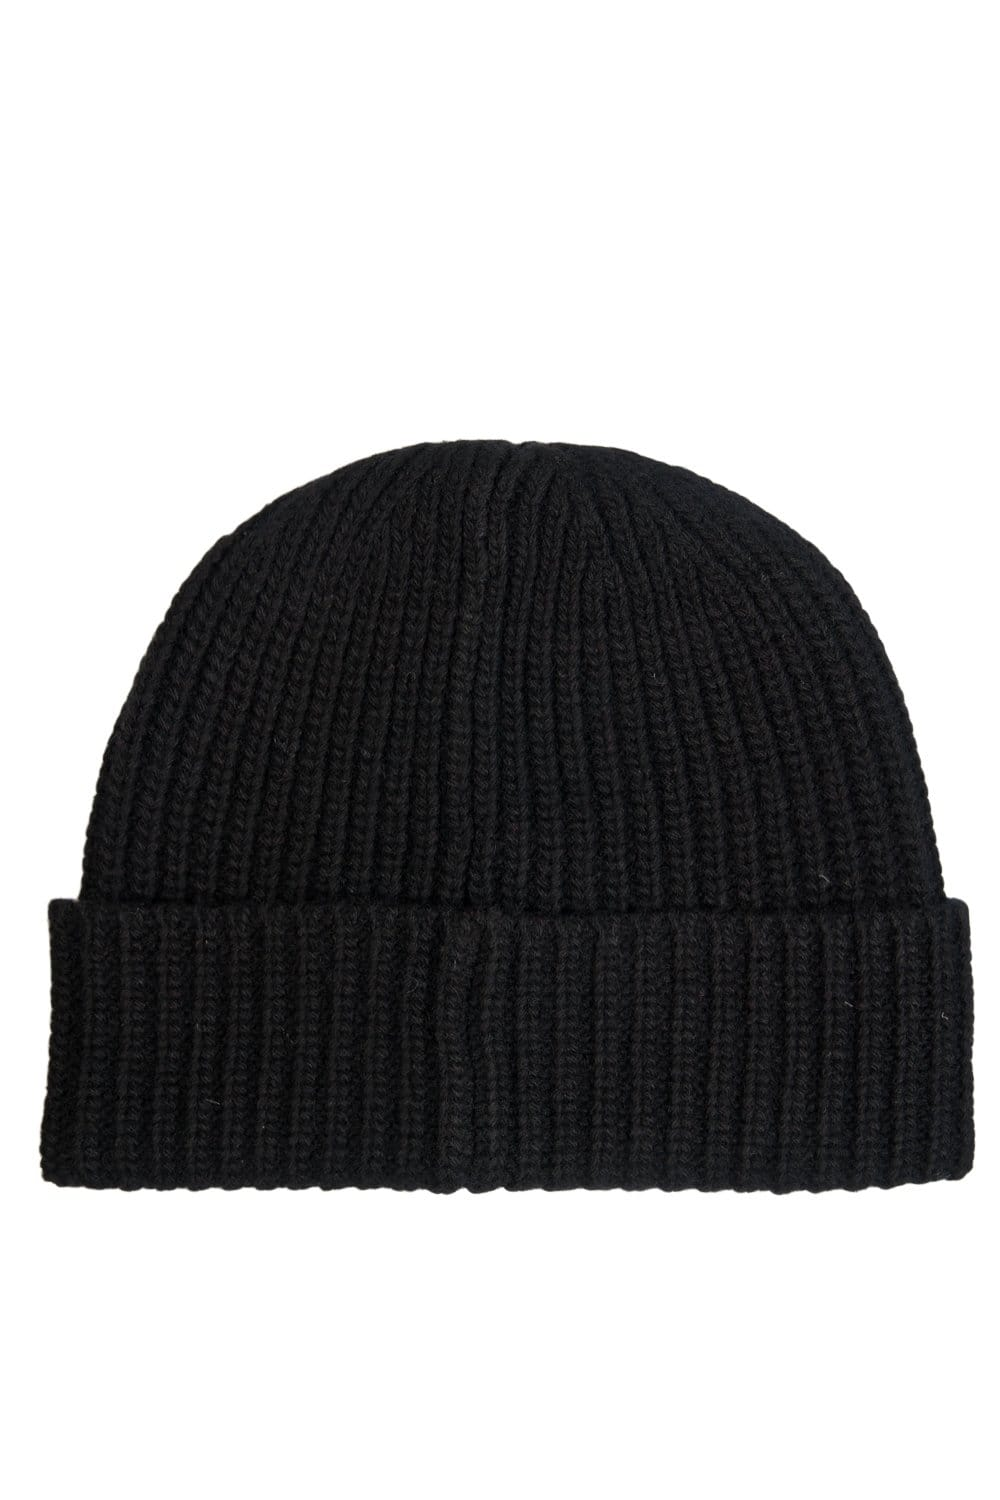 Mens Black Woolly Warm Fleece Beanie Hat Cap Ski Black Thinsulate Army Military. £ out of 5 stars 9. The North Face Salty Dog Beanie. £ - £ out of 5 stars Momola Unisex Beanie Hat Women and Men Warm Winter Hat With Ear Flaps Snow Ski Thick Knit Wool Cap. £